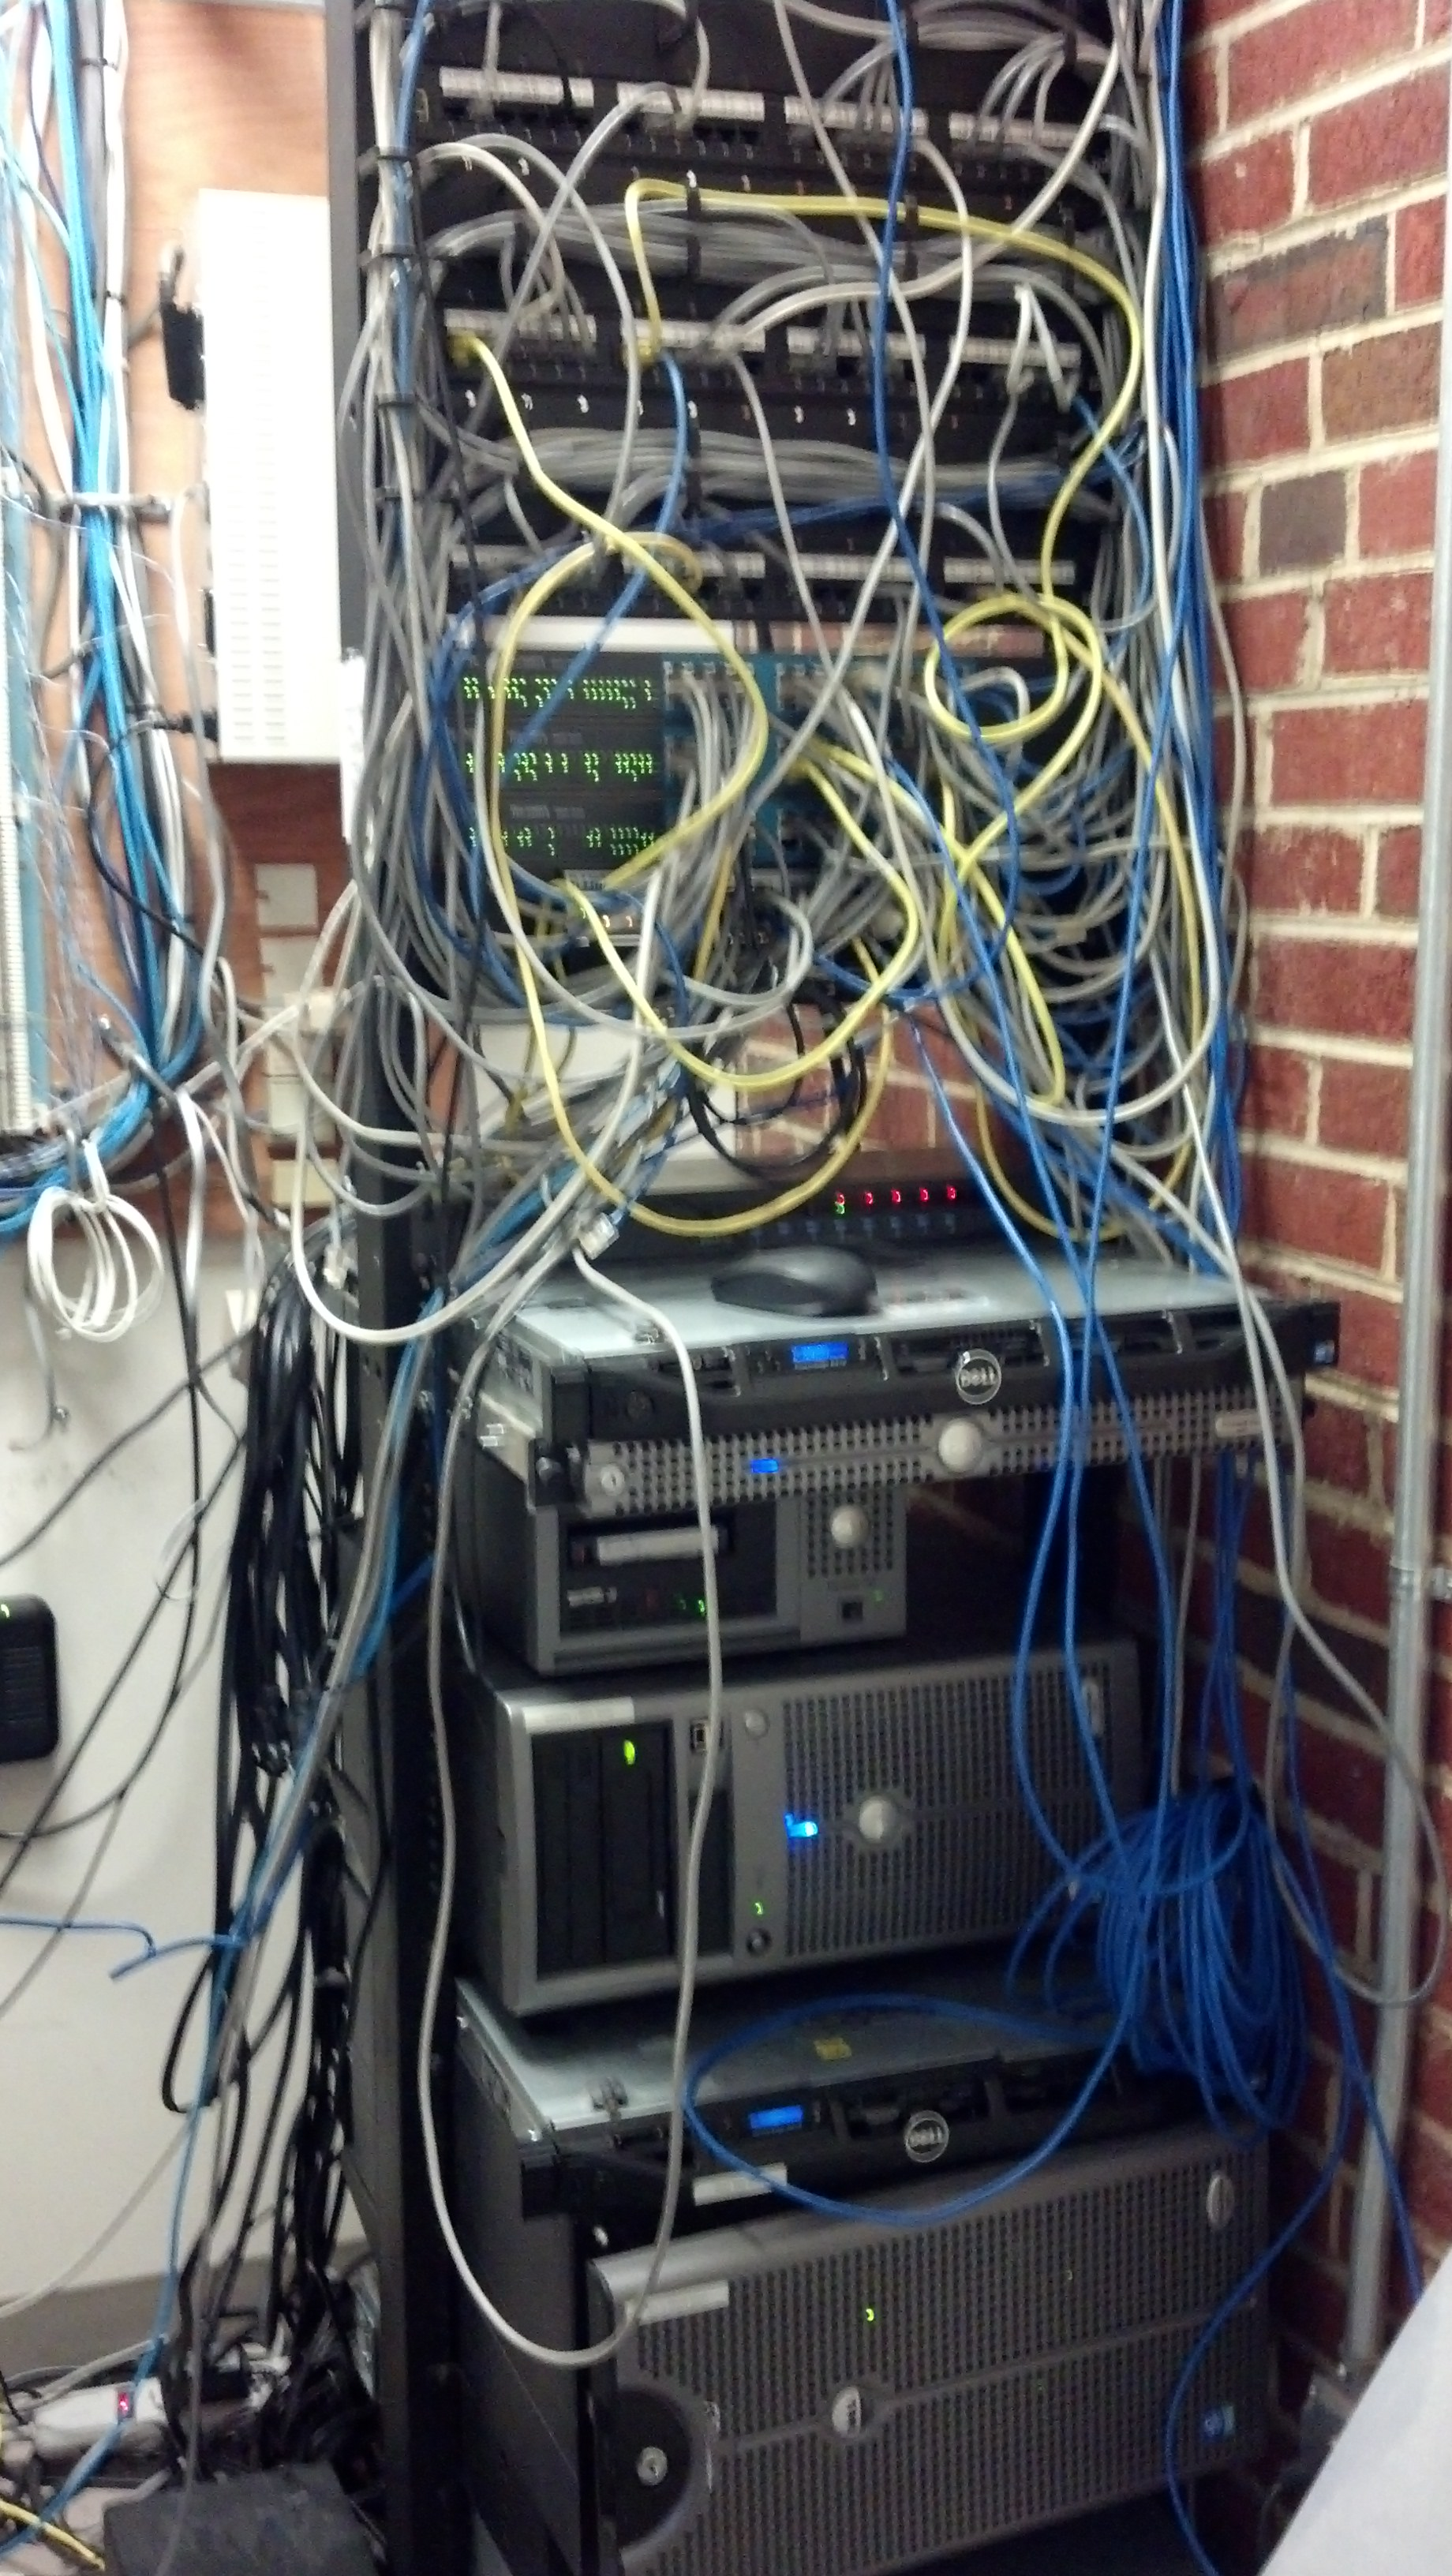 hight resolution of from a rats nest into a server closet how we cleaned up a major wiring diagram cluster mess wiring